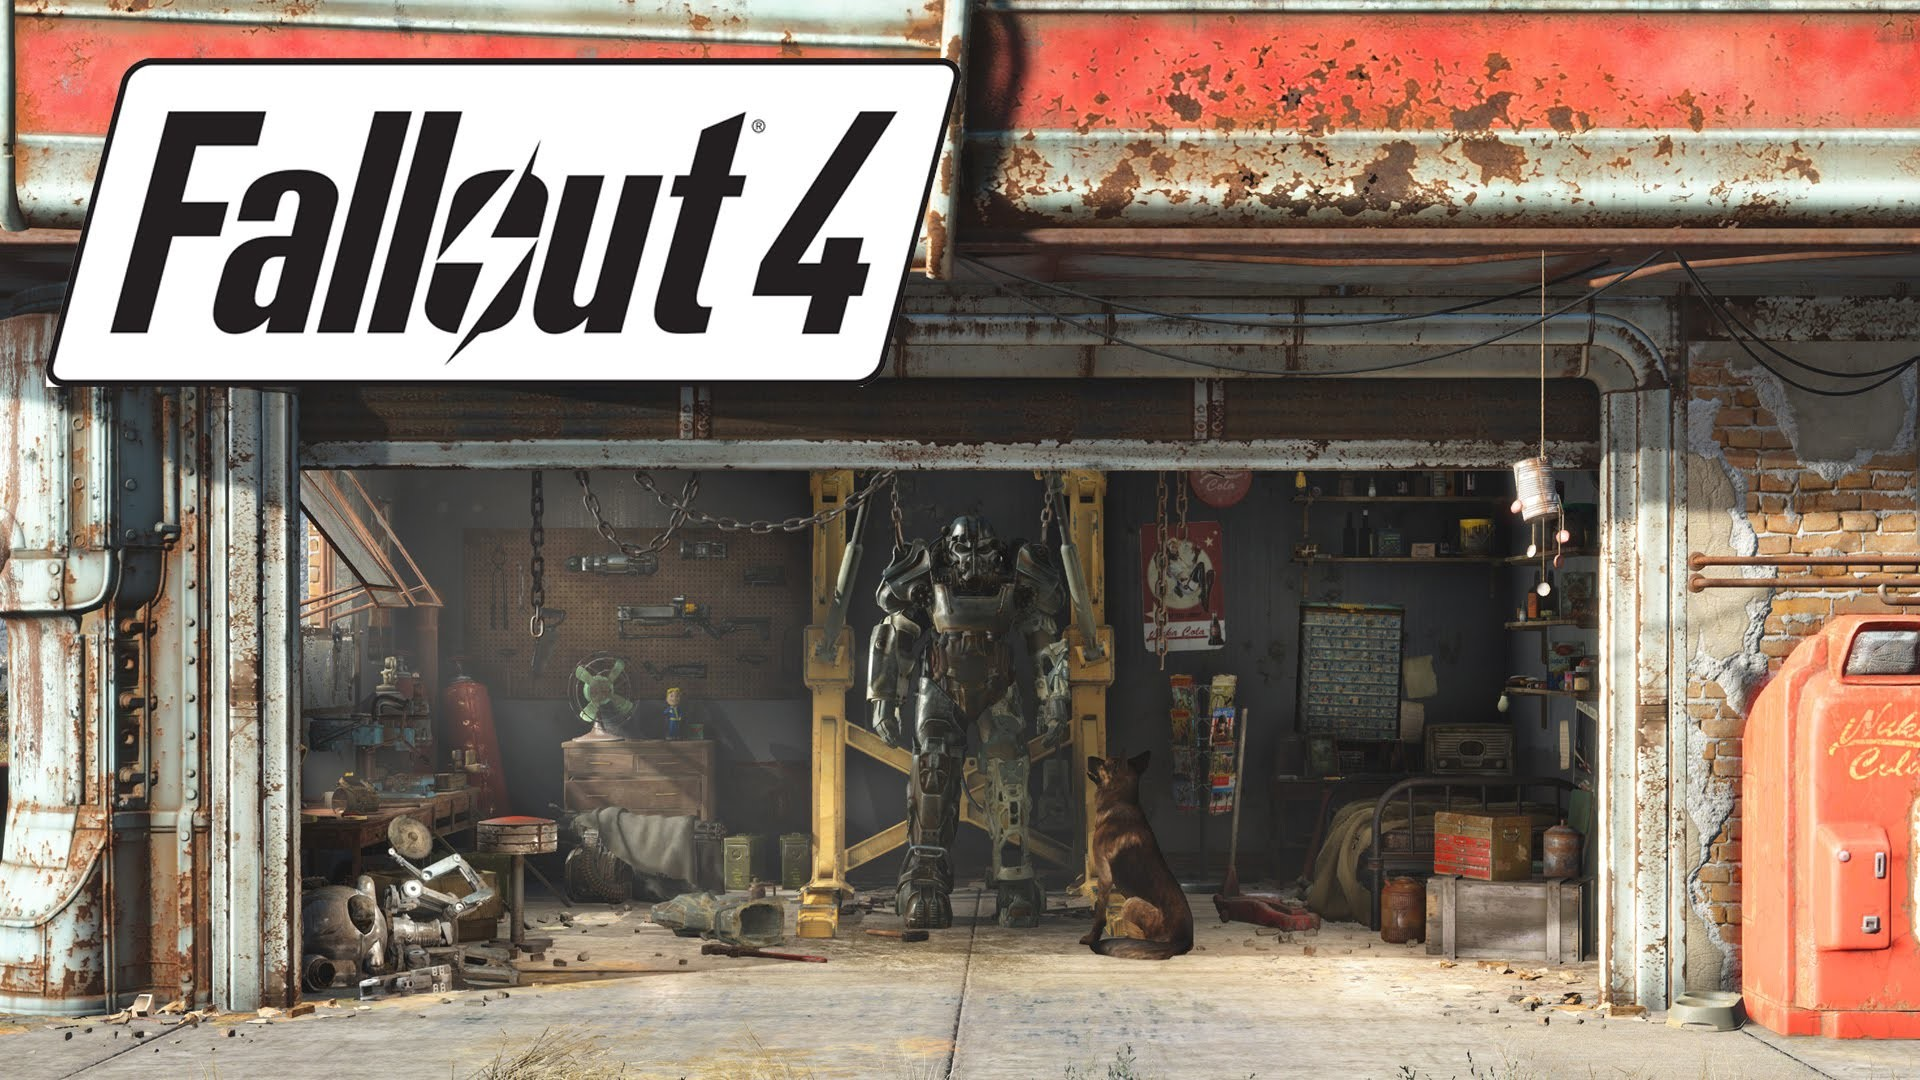 Fallout 4 Wallpaper 1920×1080 Fallout 4 Wallpaper Android